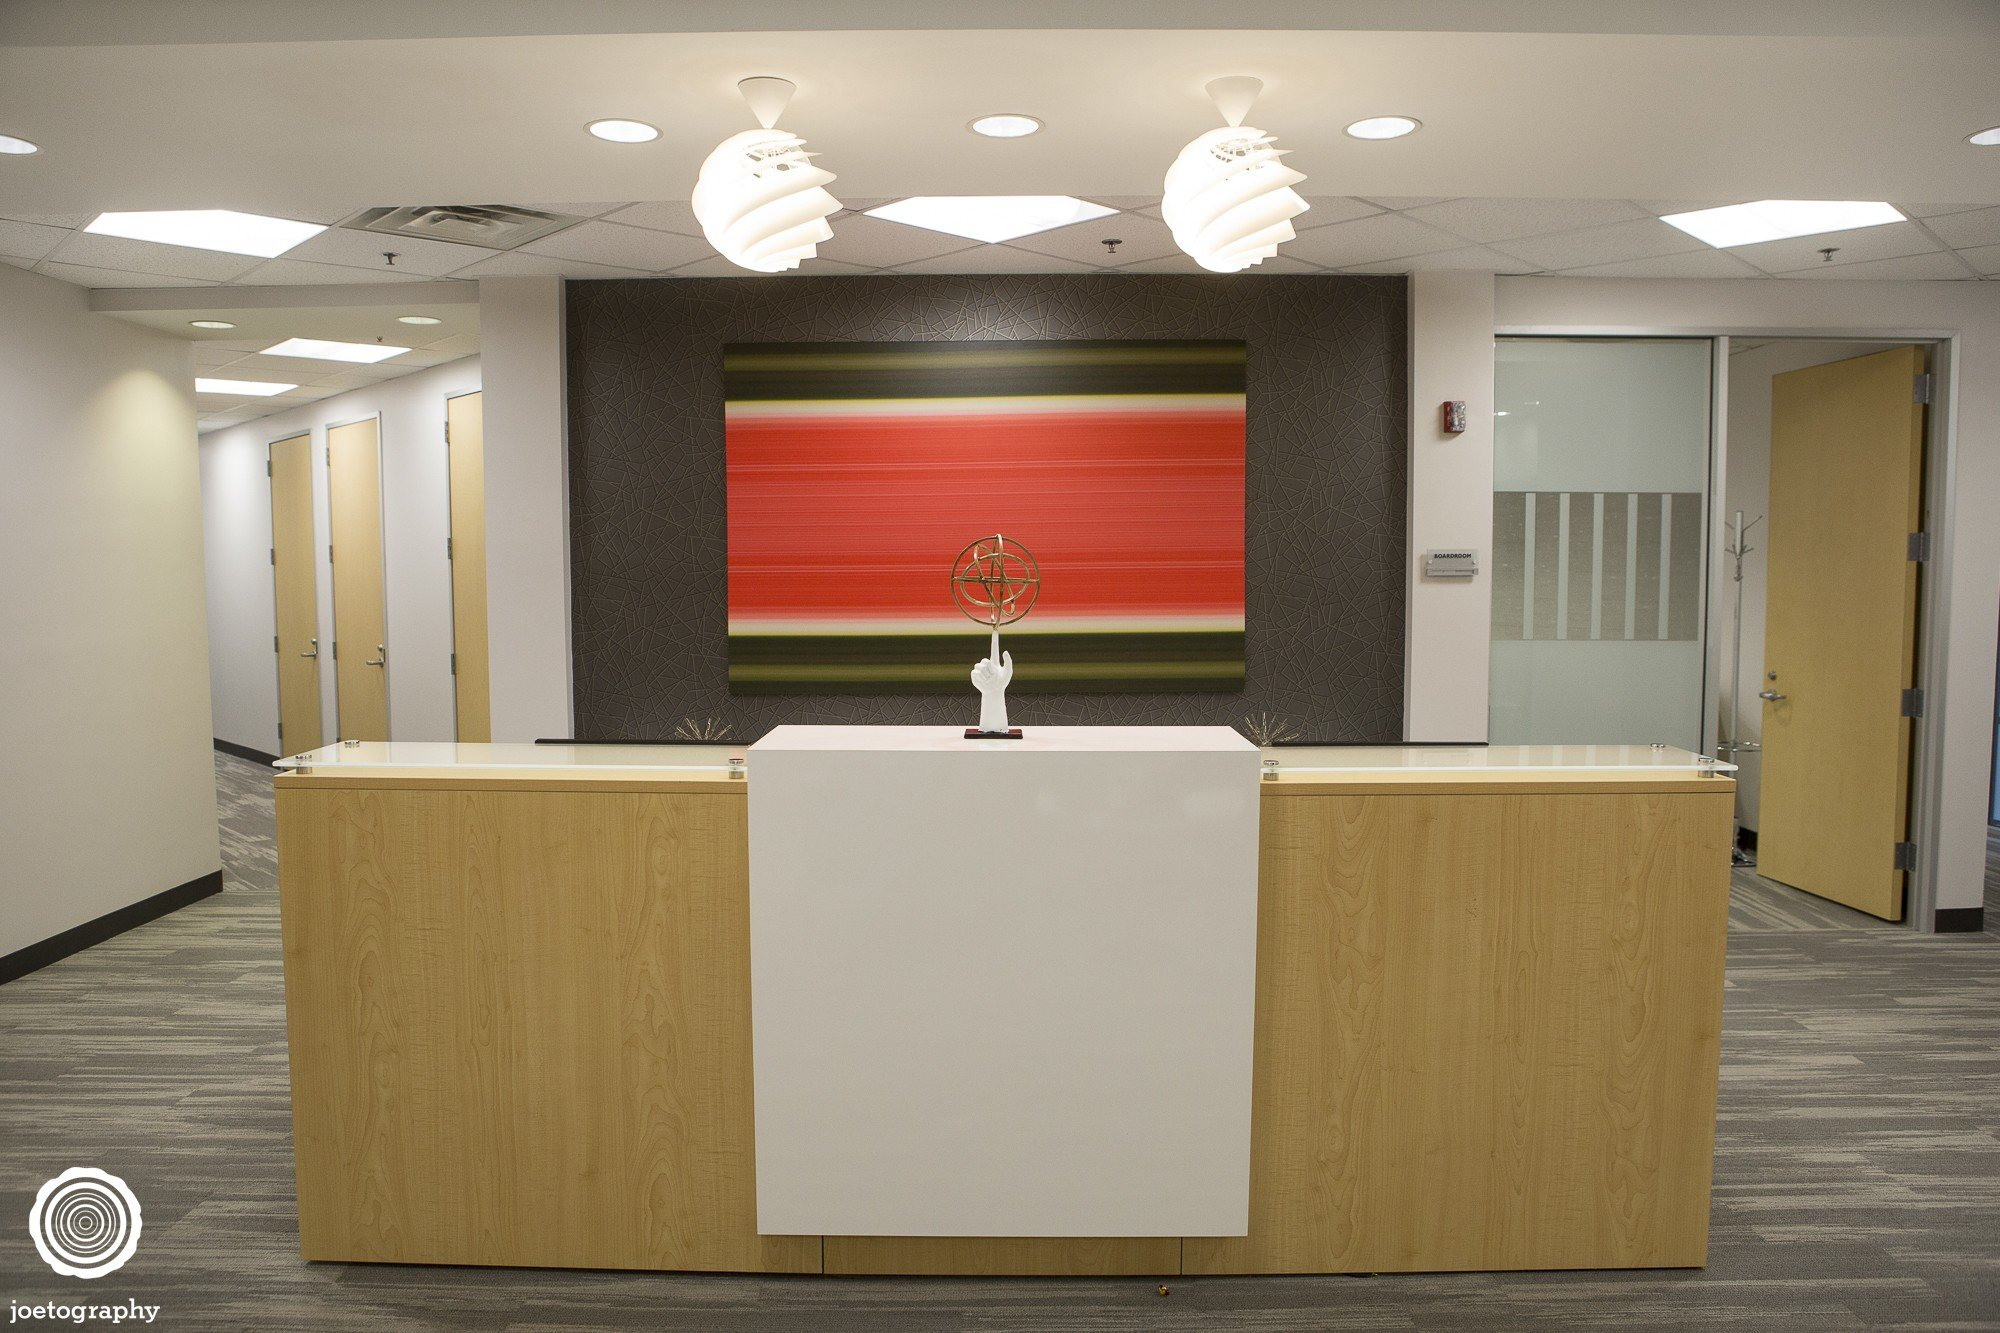 capital-construction-regus-offices-architecture-photography-indianapolis-5